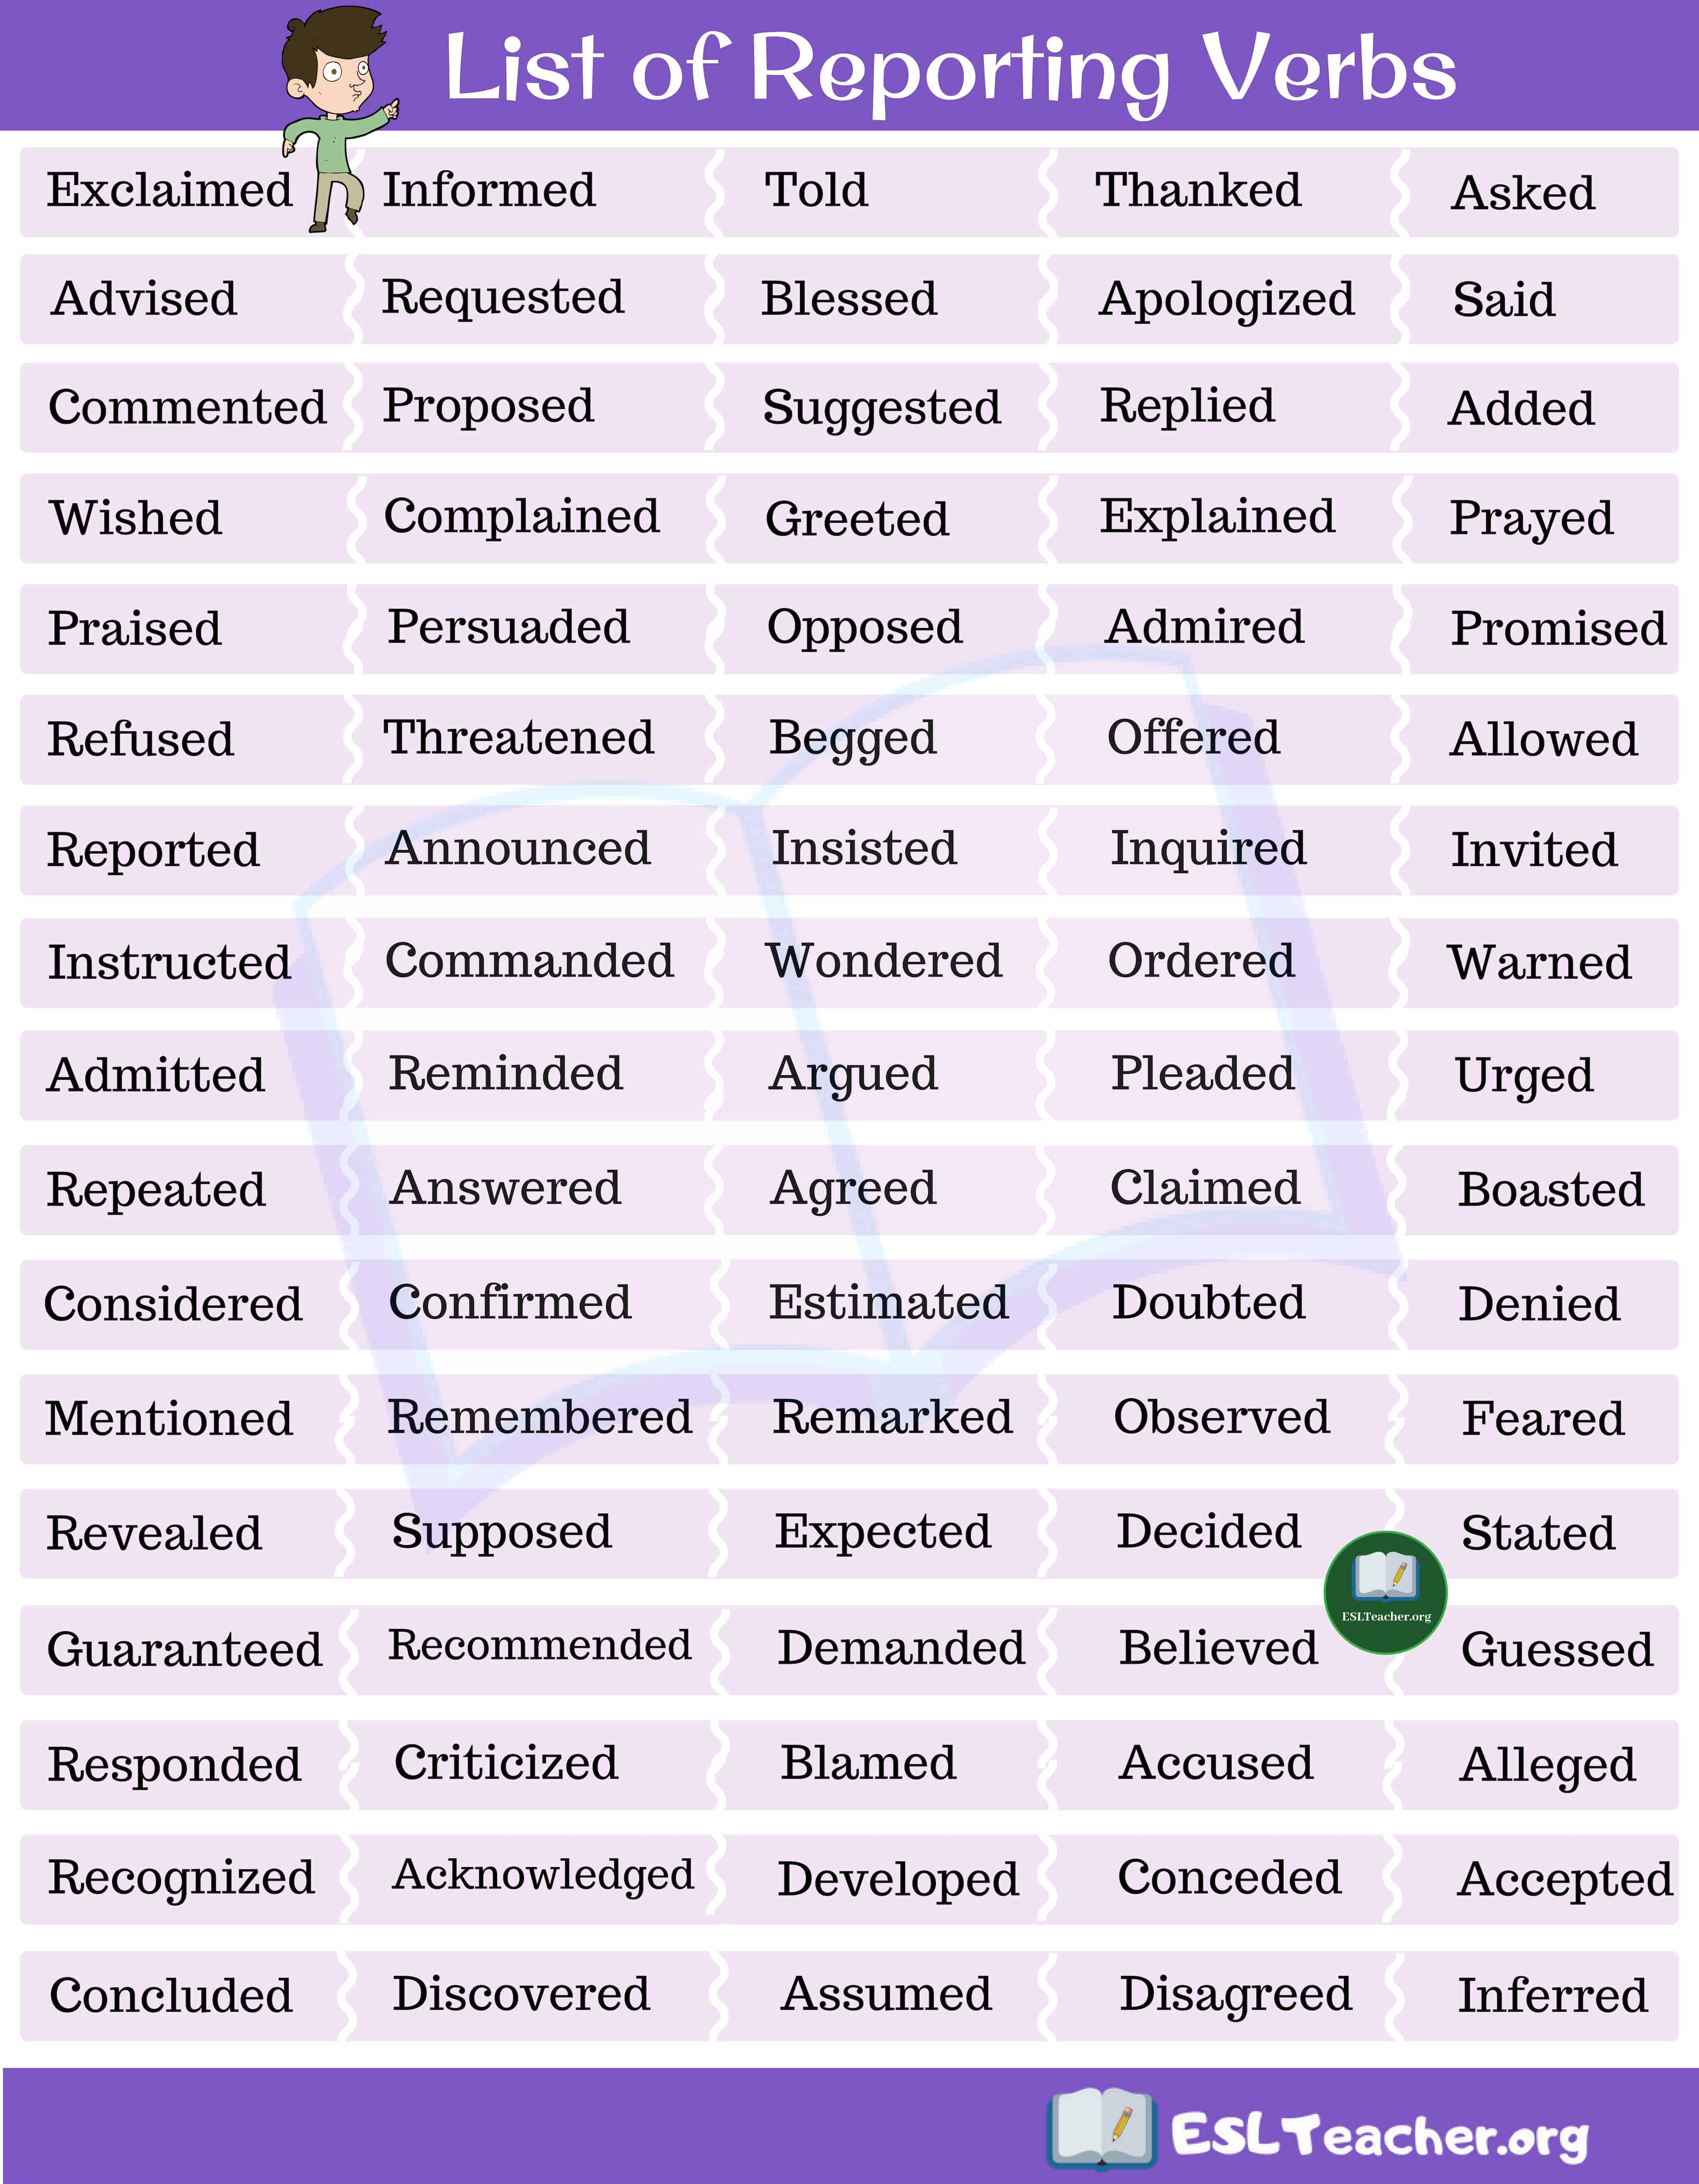 Reporting Verbs in English